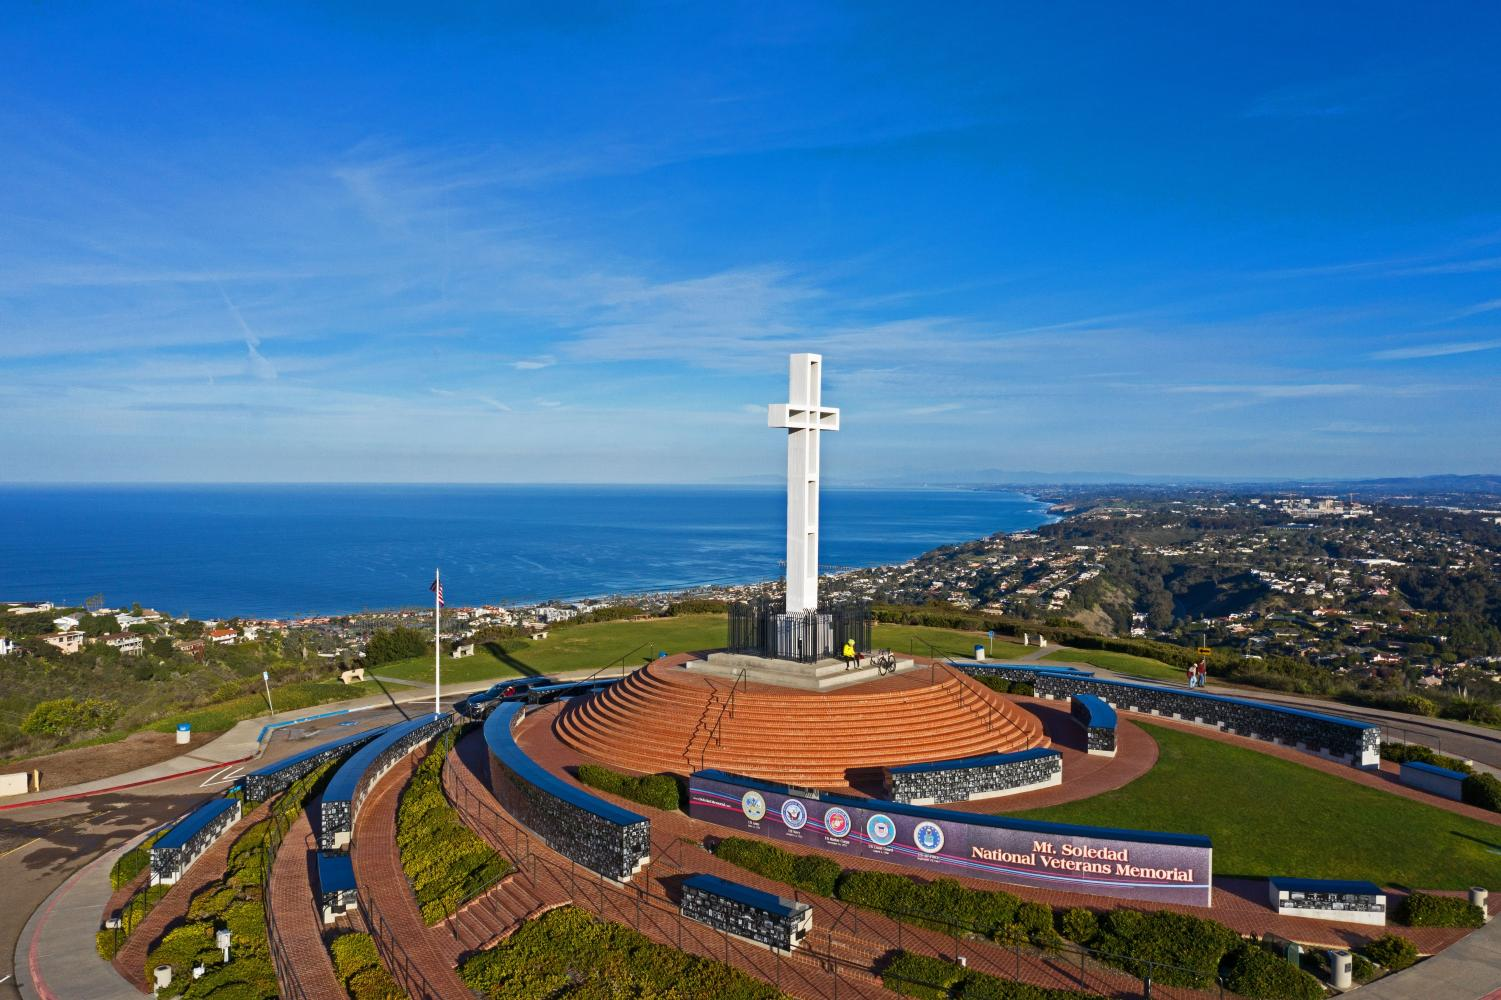 Mt. Soledad - Via Capri Bike Climb - PJAMM Cycling